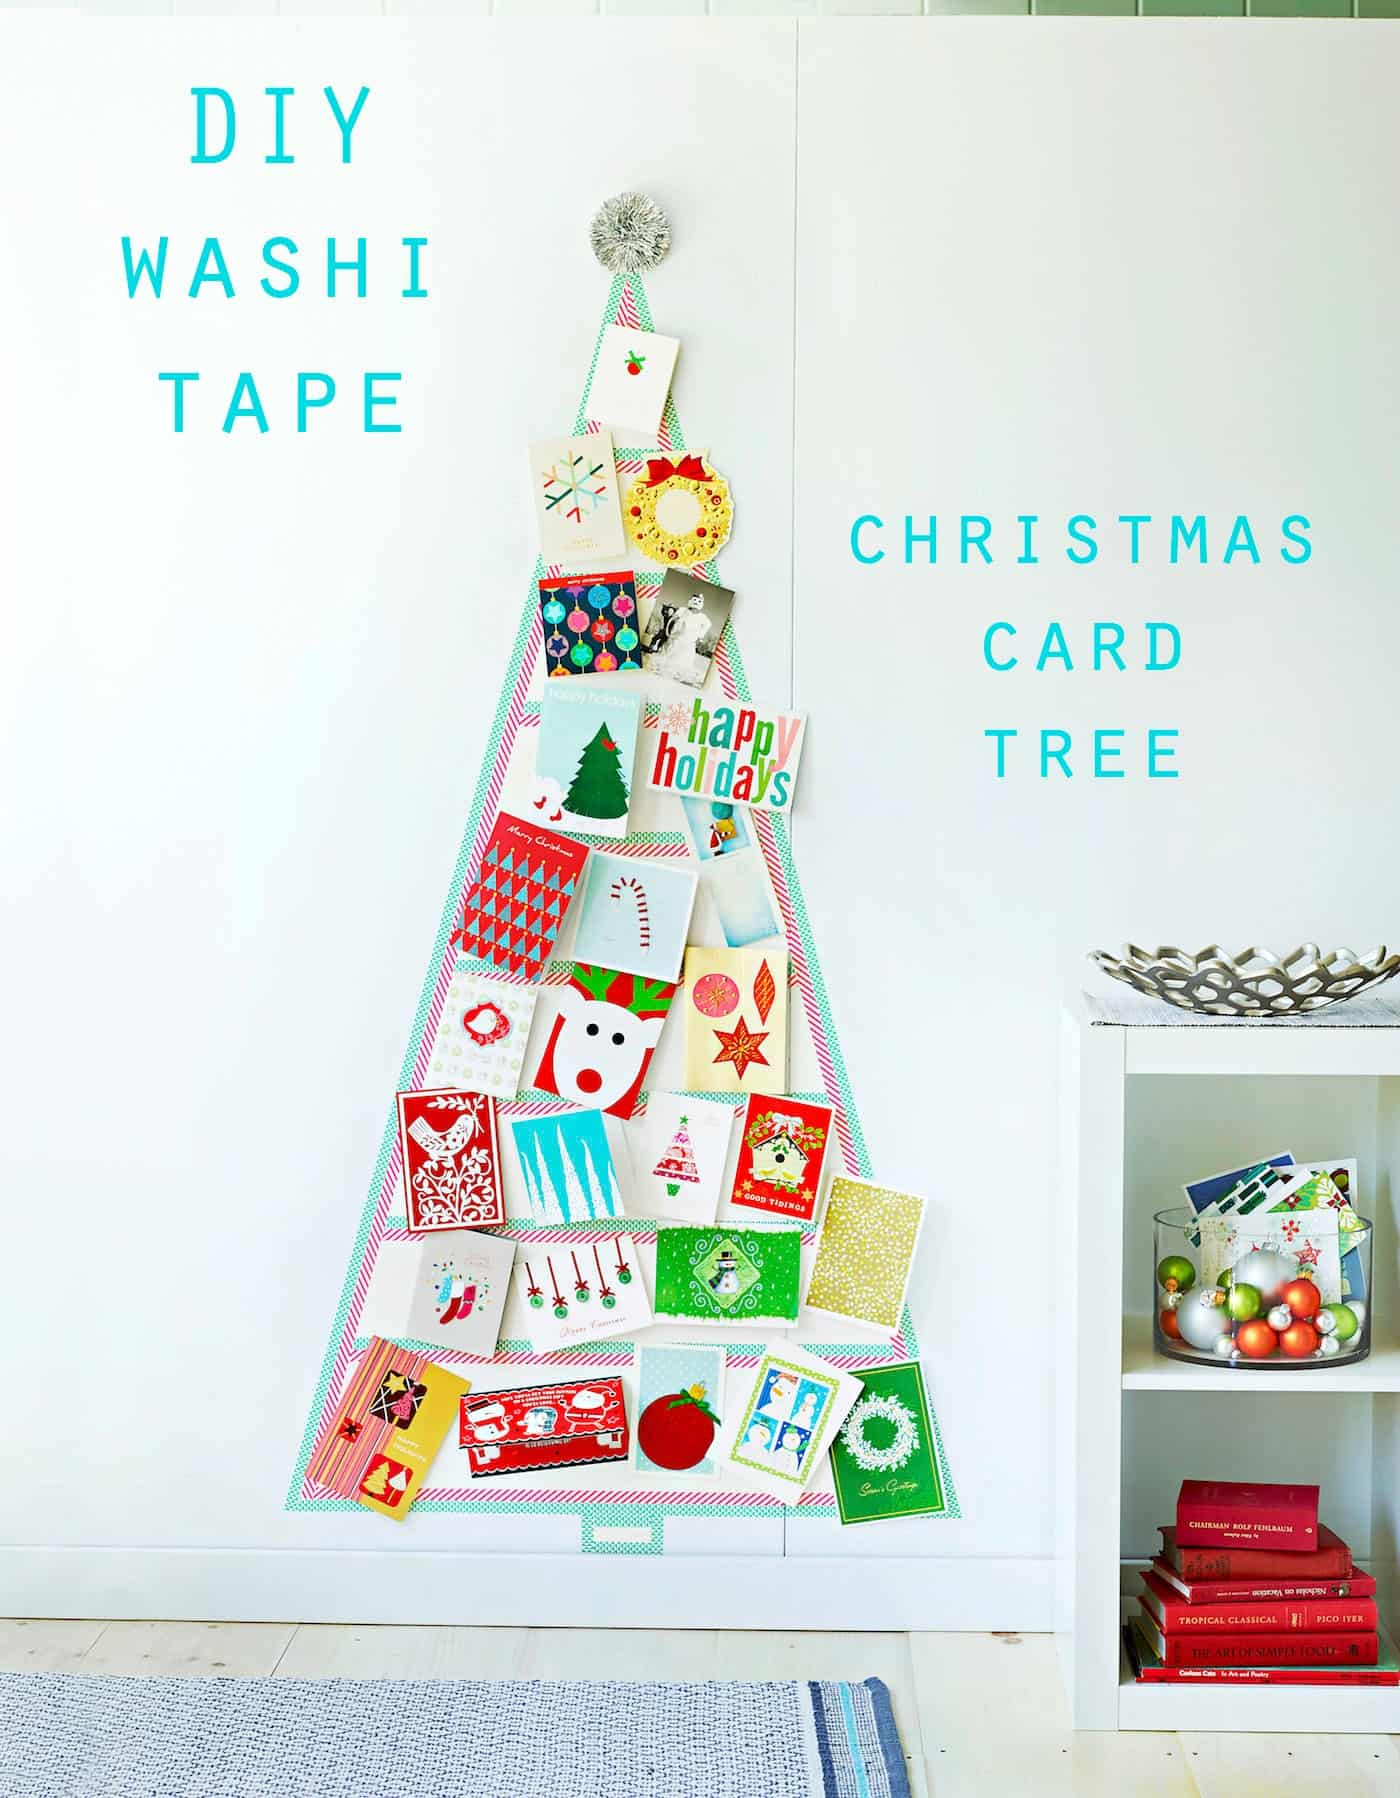 Christmas Decoration Ideas - Washi Tape Christmas Card Tree